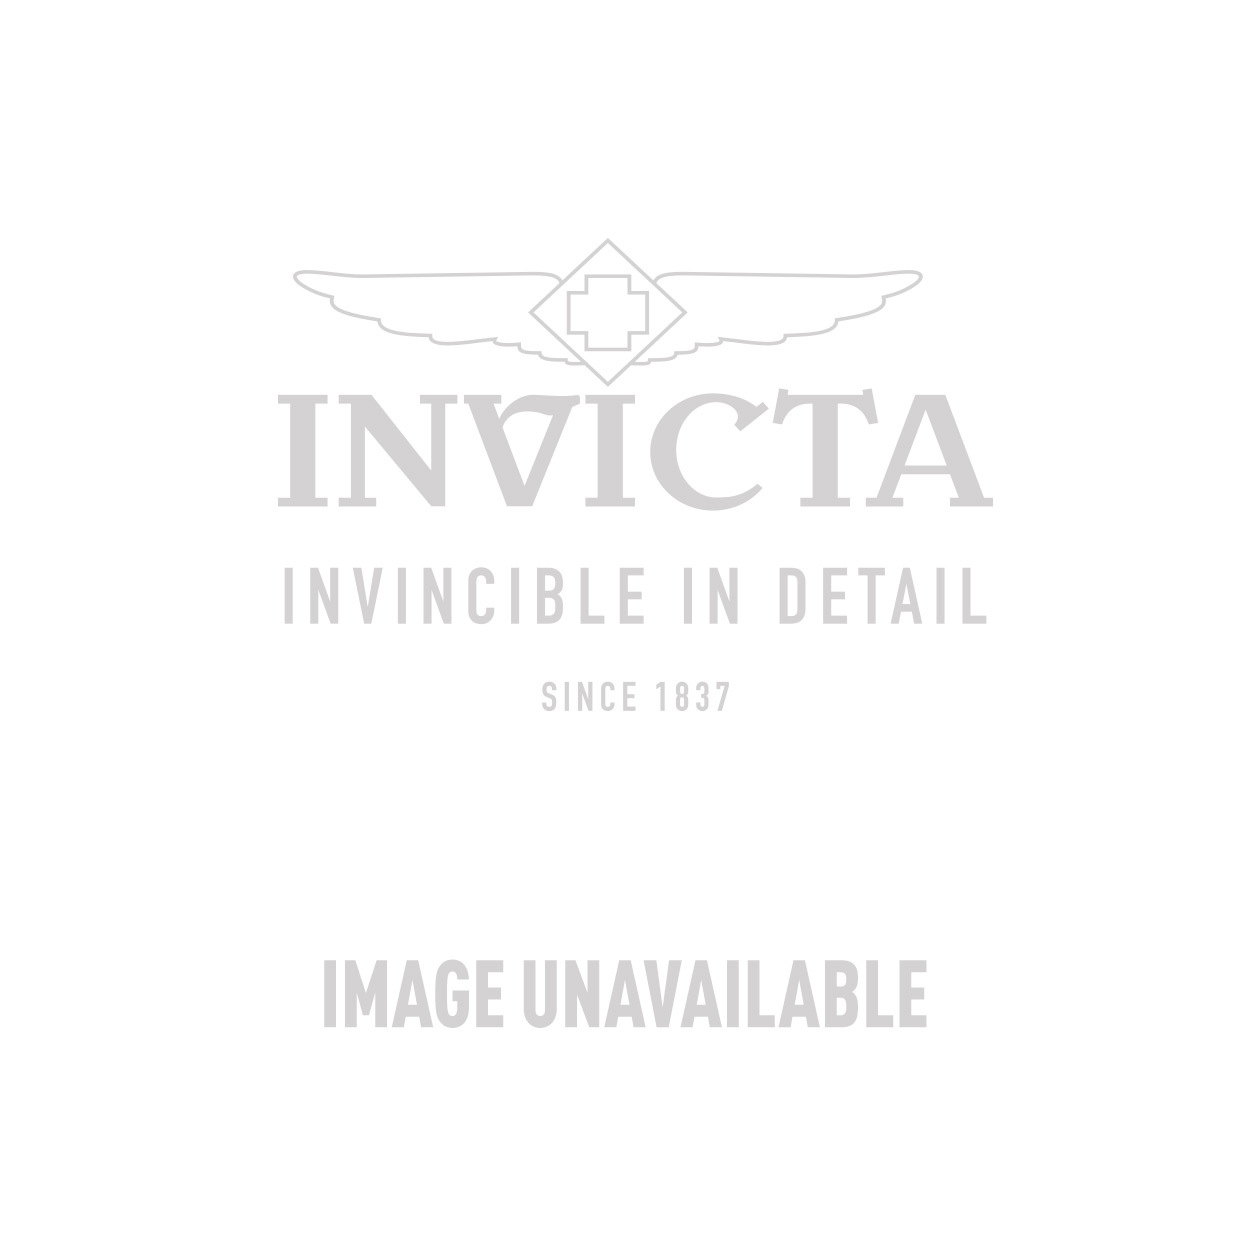 Invicta Excursion Swiss Made Quartz Watch - Gold, Stainless Steel case with Steel, Gold tone Stainless Steel band - Model 90040